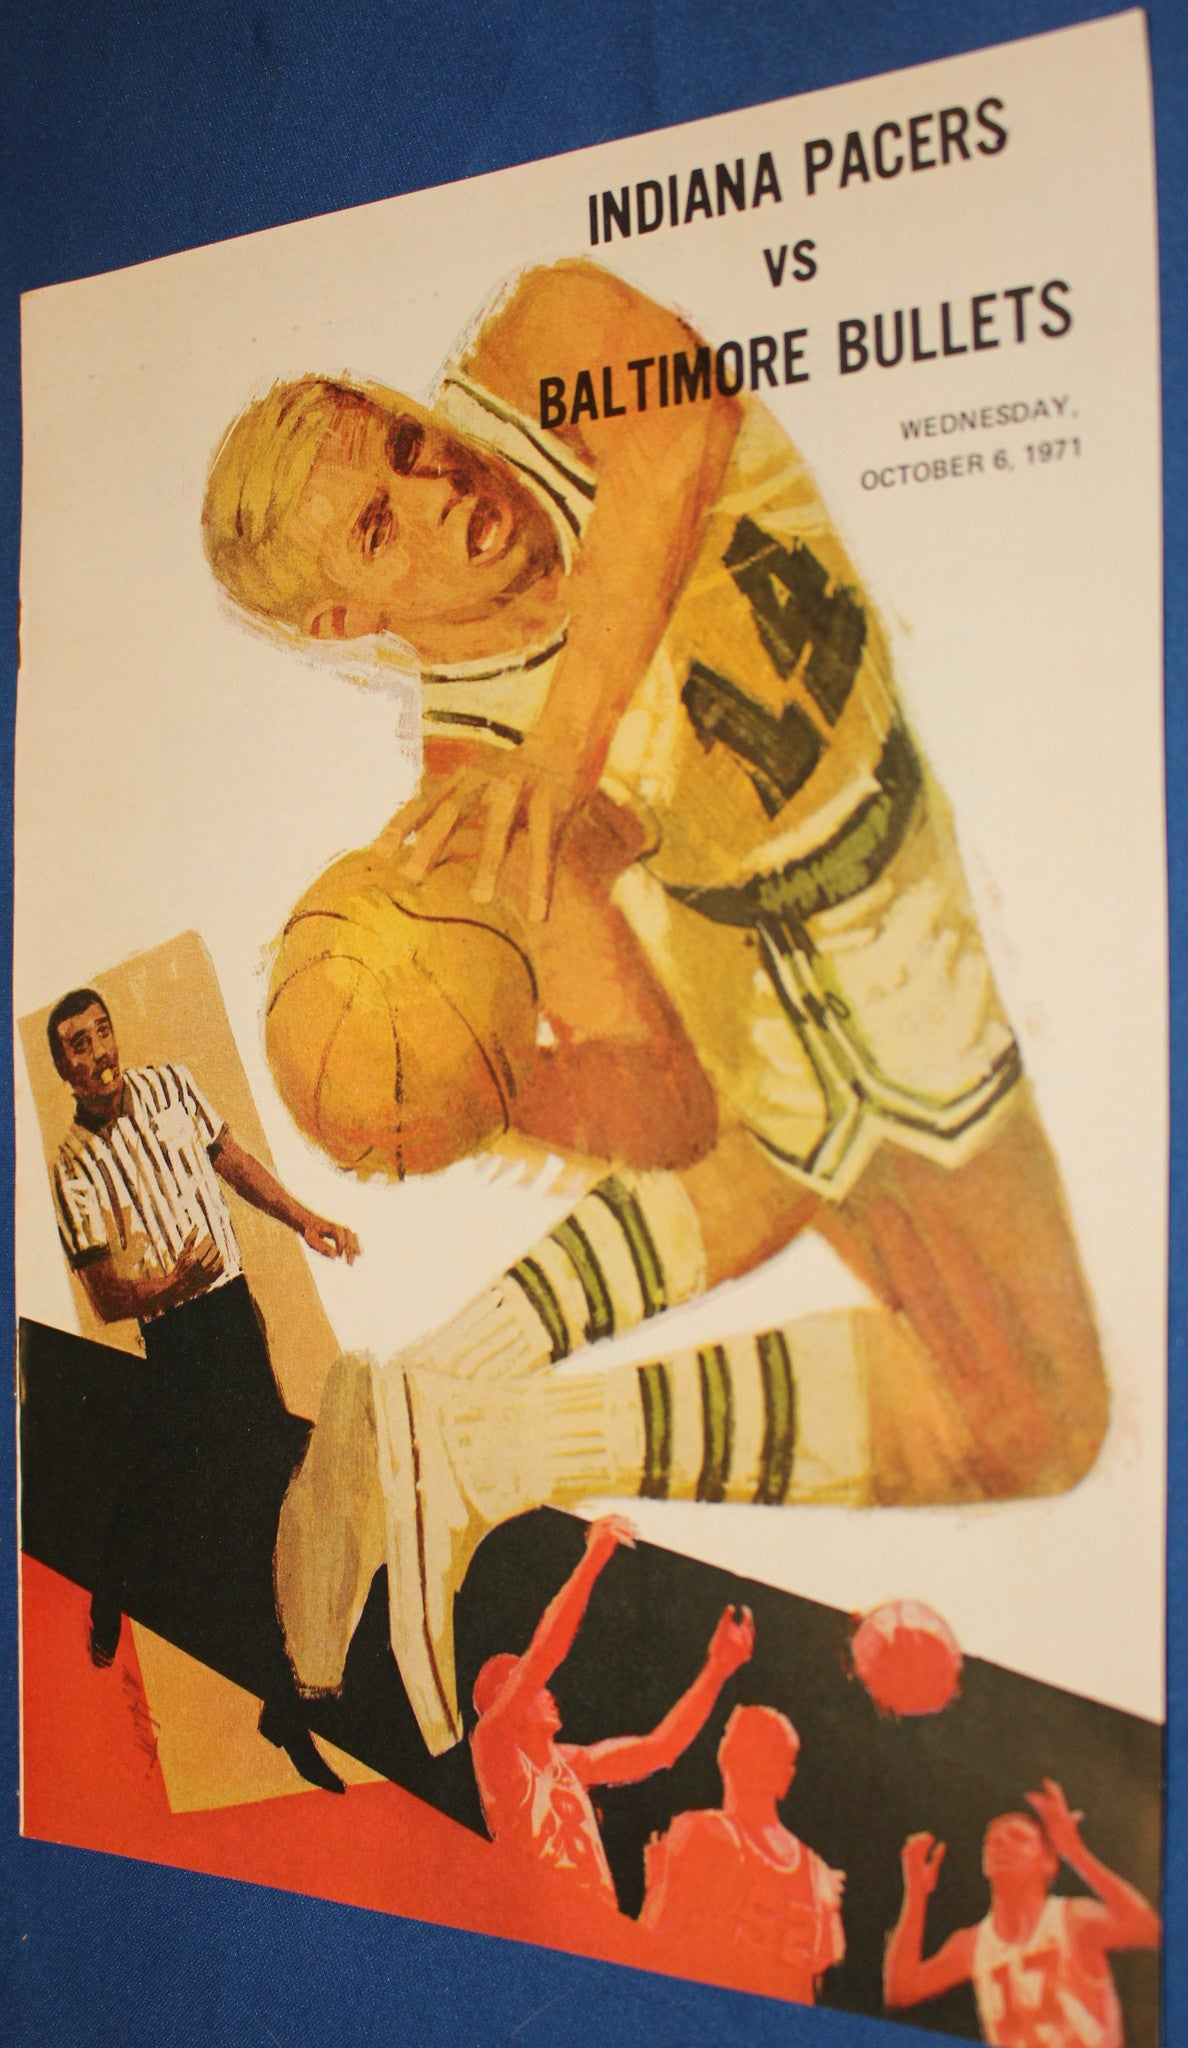 1971 Indiana Pacers vs Baltimore Bullets vs Indiana Pacers ABA vs NBA Program - Vintage Indy Sports